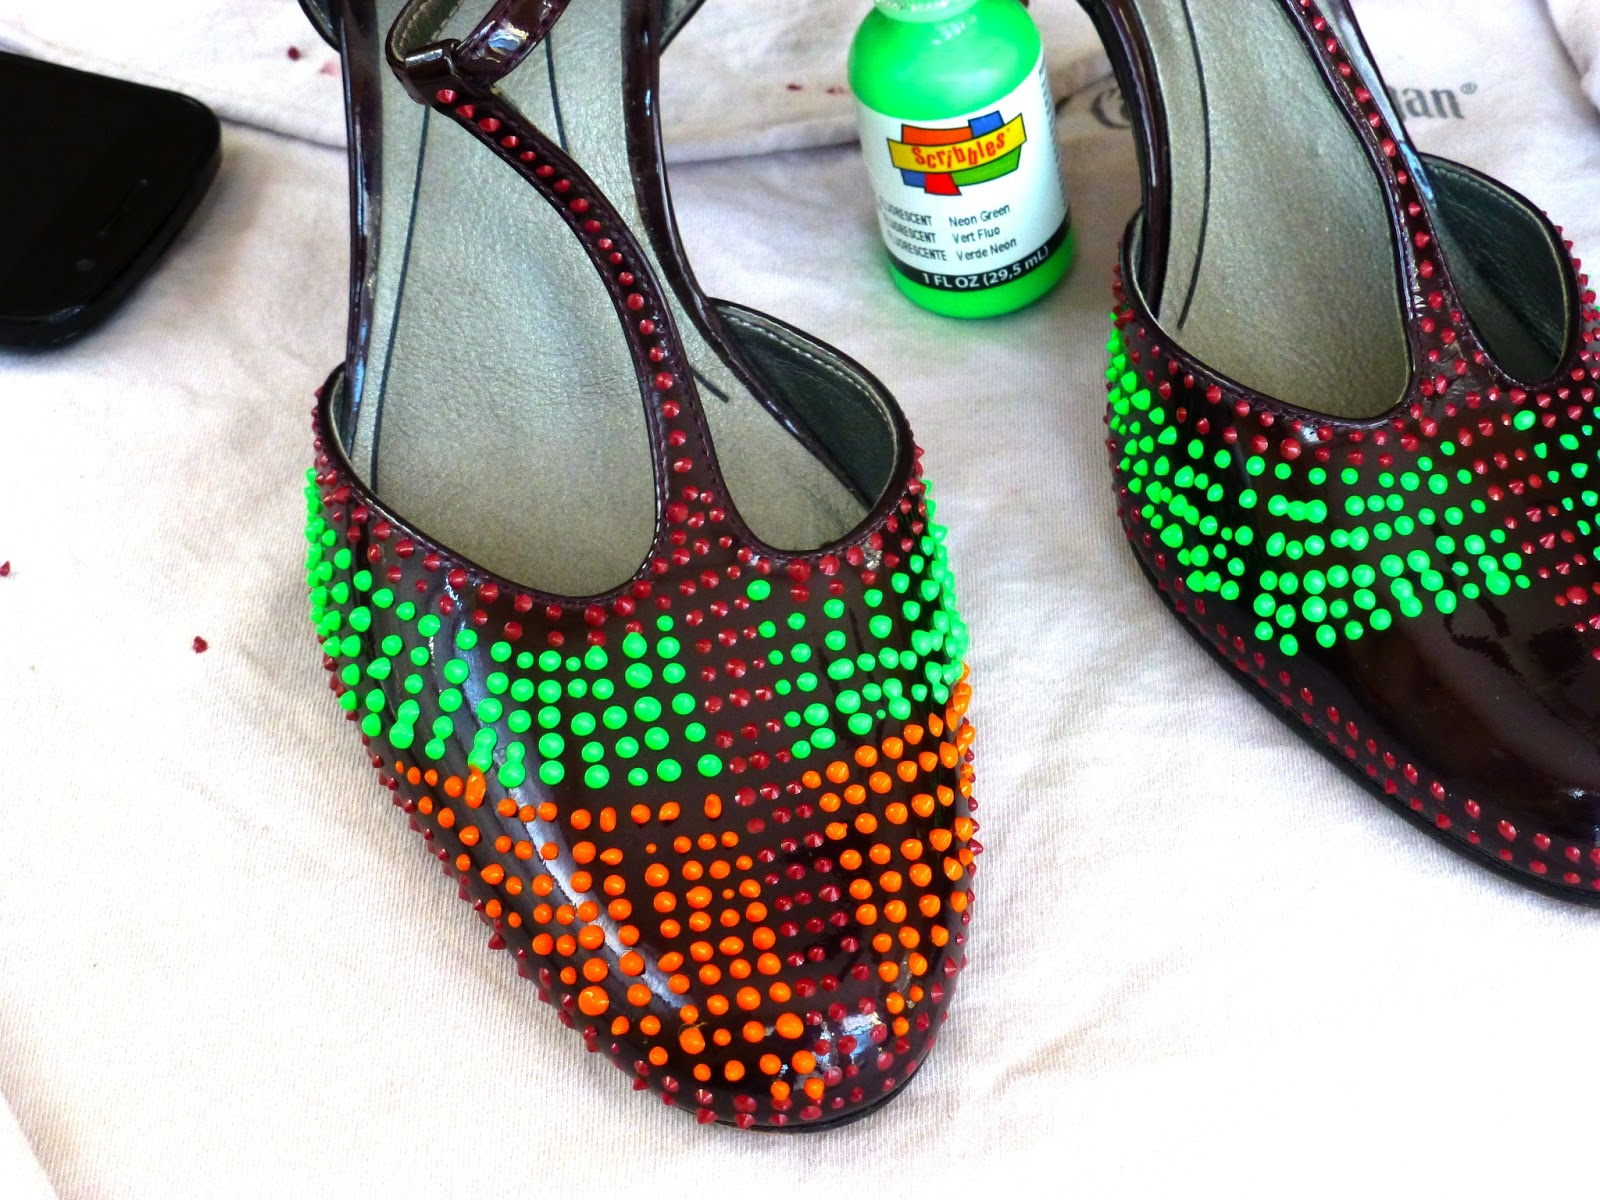 DIY Beaded Shoes - Winky Eye Pattern Flats - Turn this popular eye design into a quirky, fun fashion statement & learn how to make your own beaded shoes without any real beading skills using this step by .